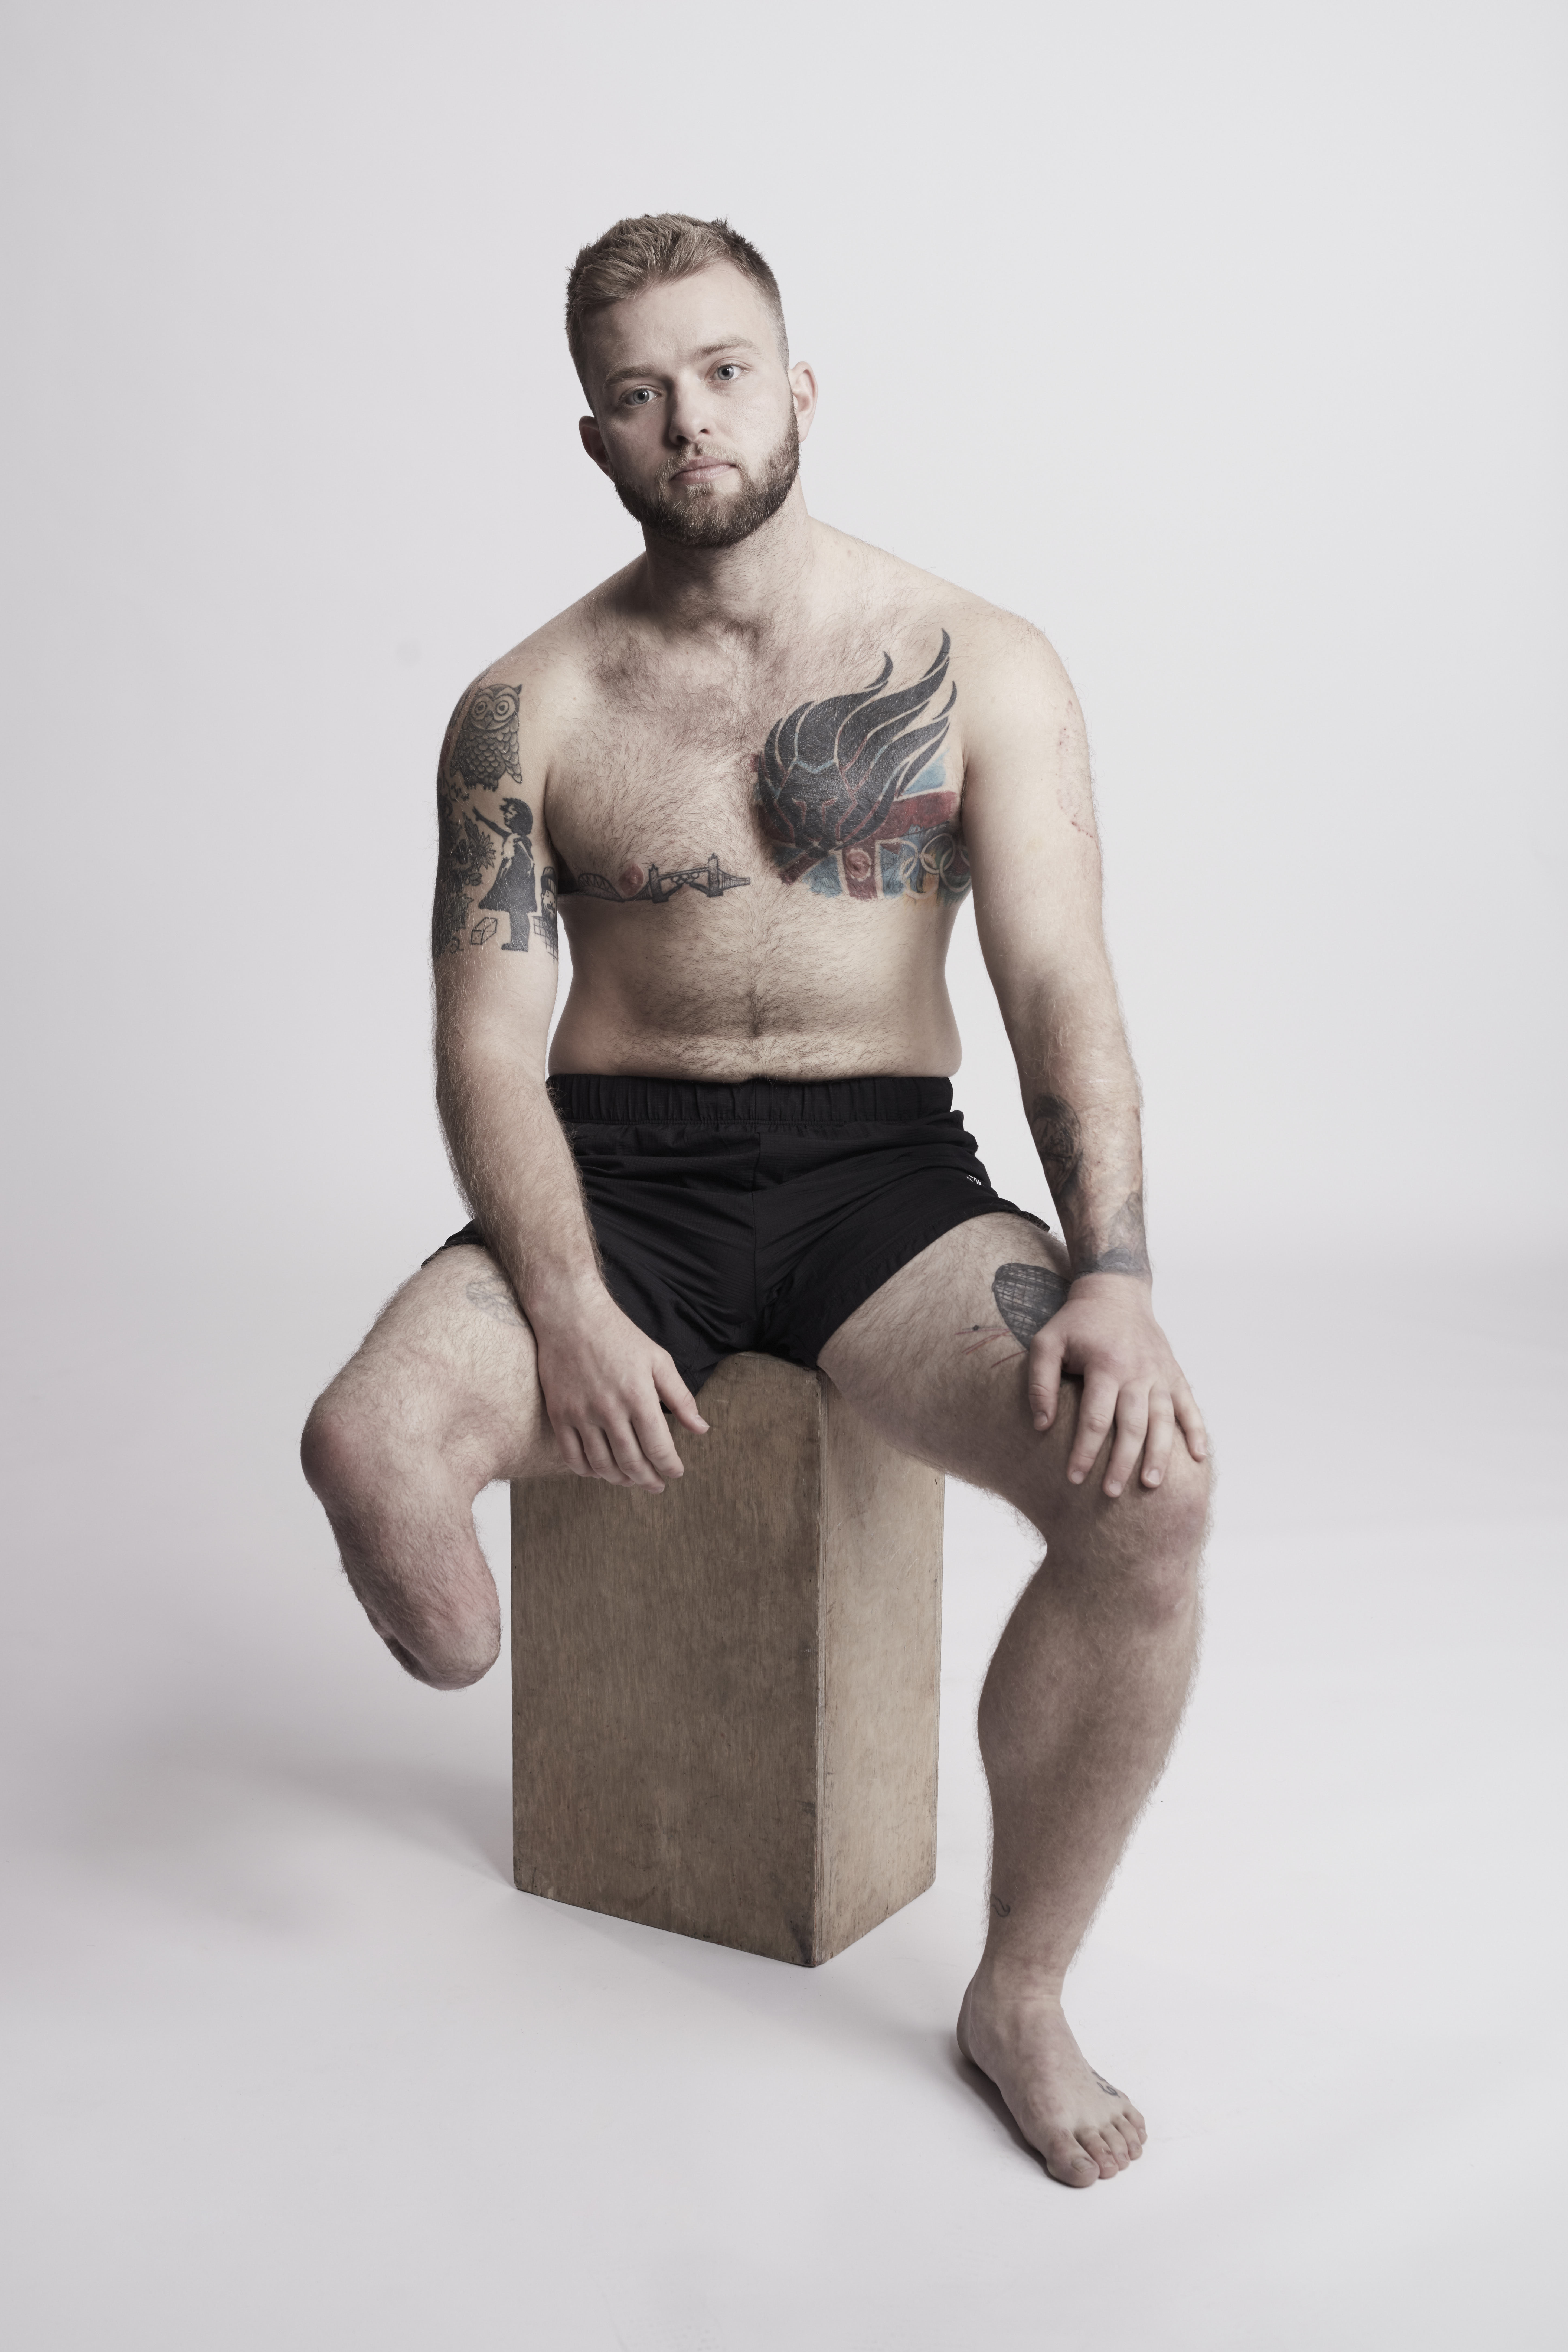 Jamie, a man with lower limb amputation and tattoos sitting on a wooden stool.